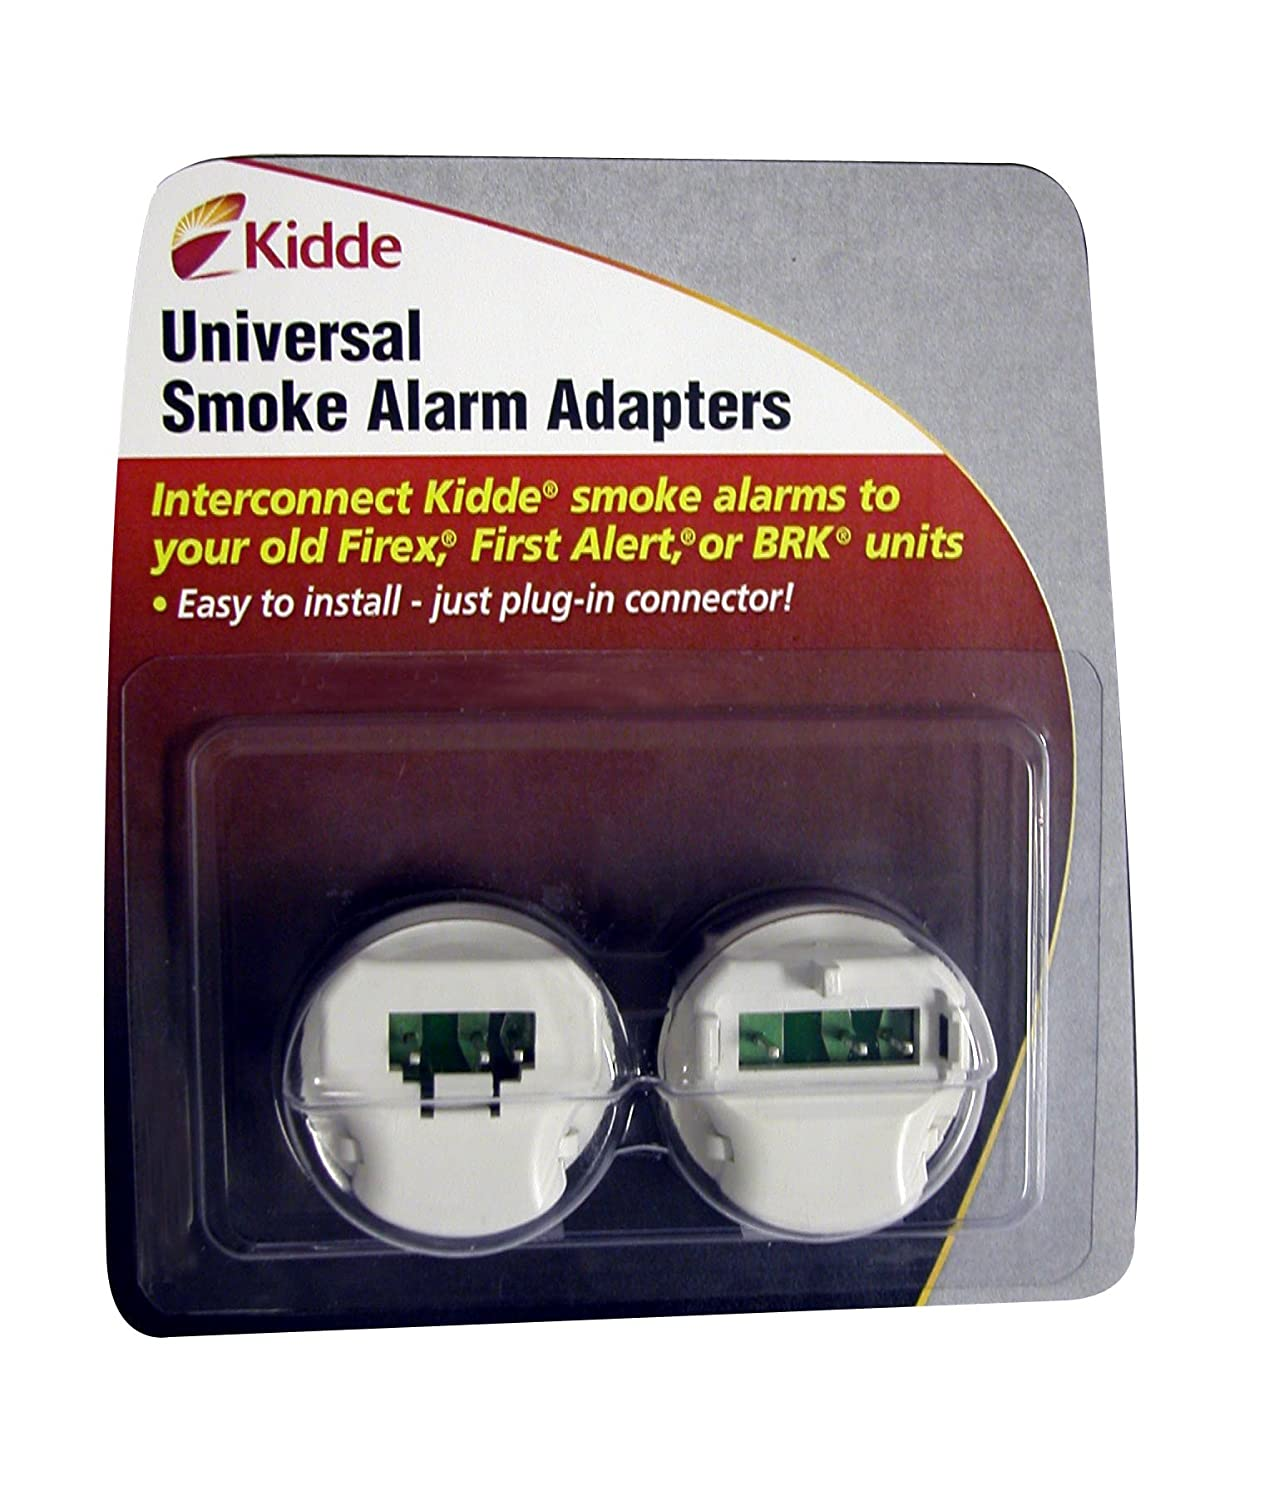 814Se4H5loL._SL1500_ kidde ka b, ka f universal smoke alarm adapters, 2 different units  at mifinder.co